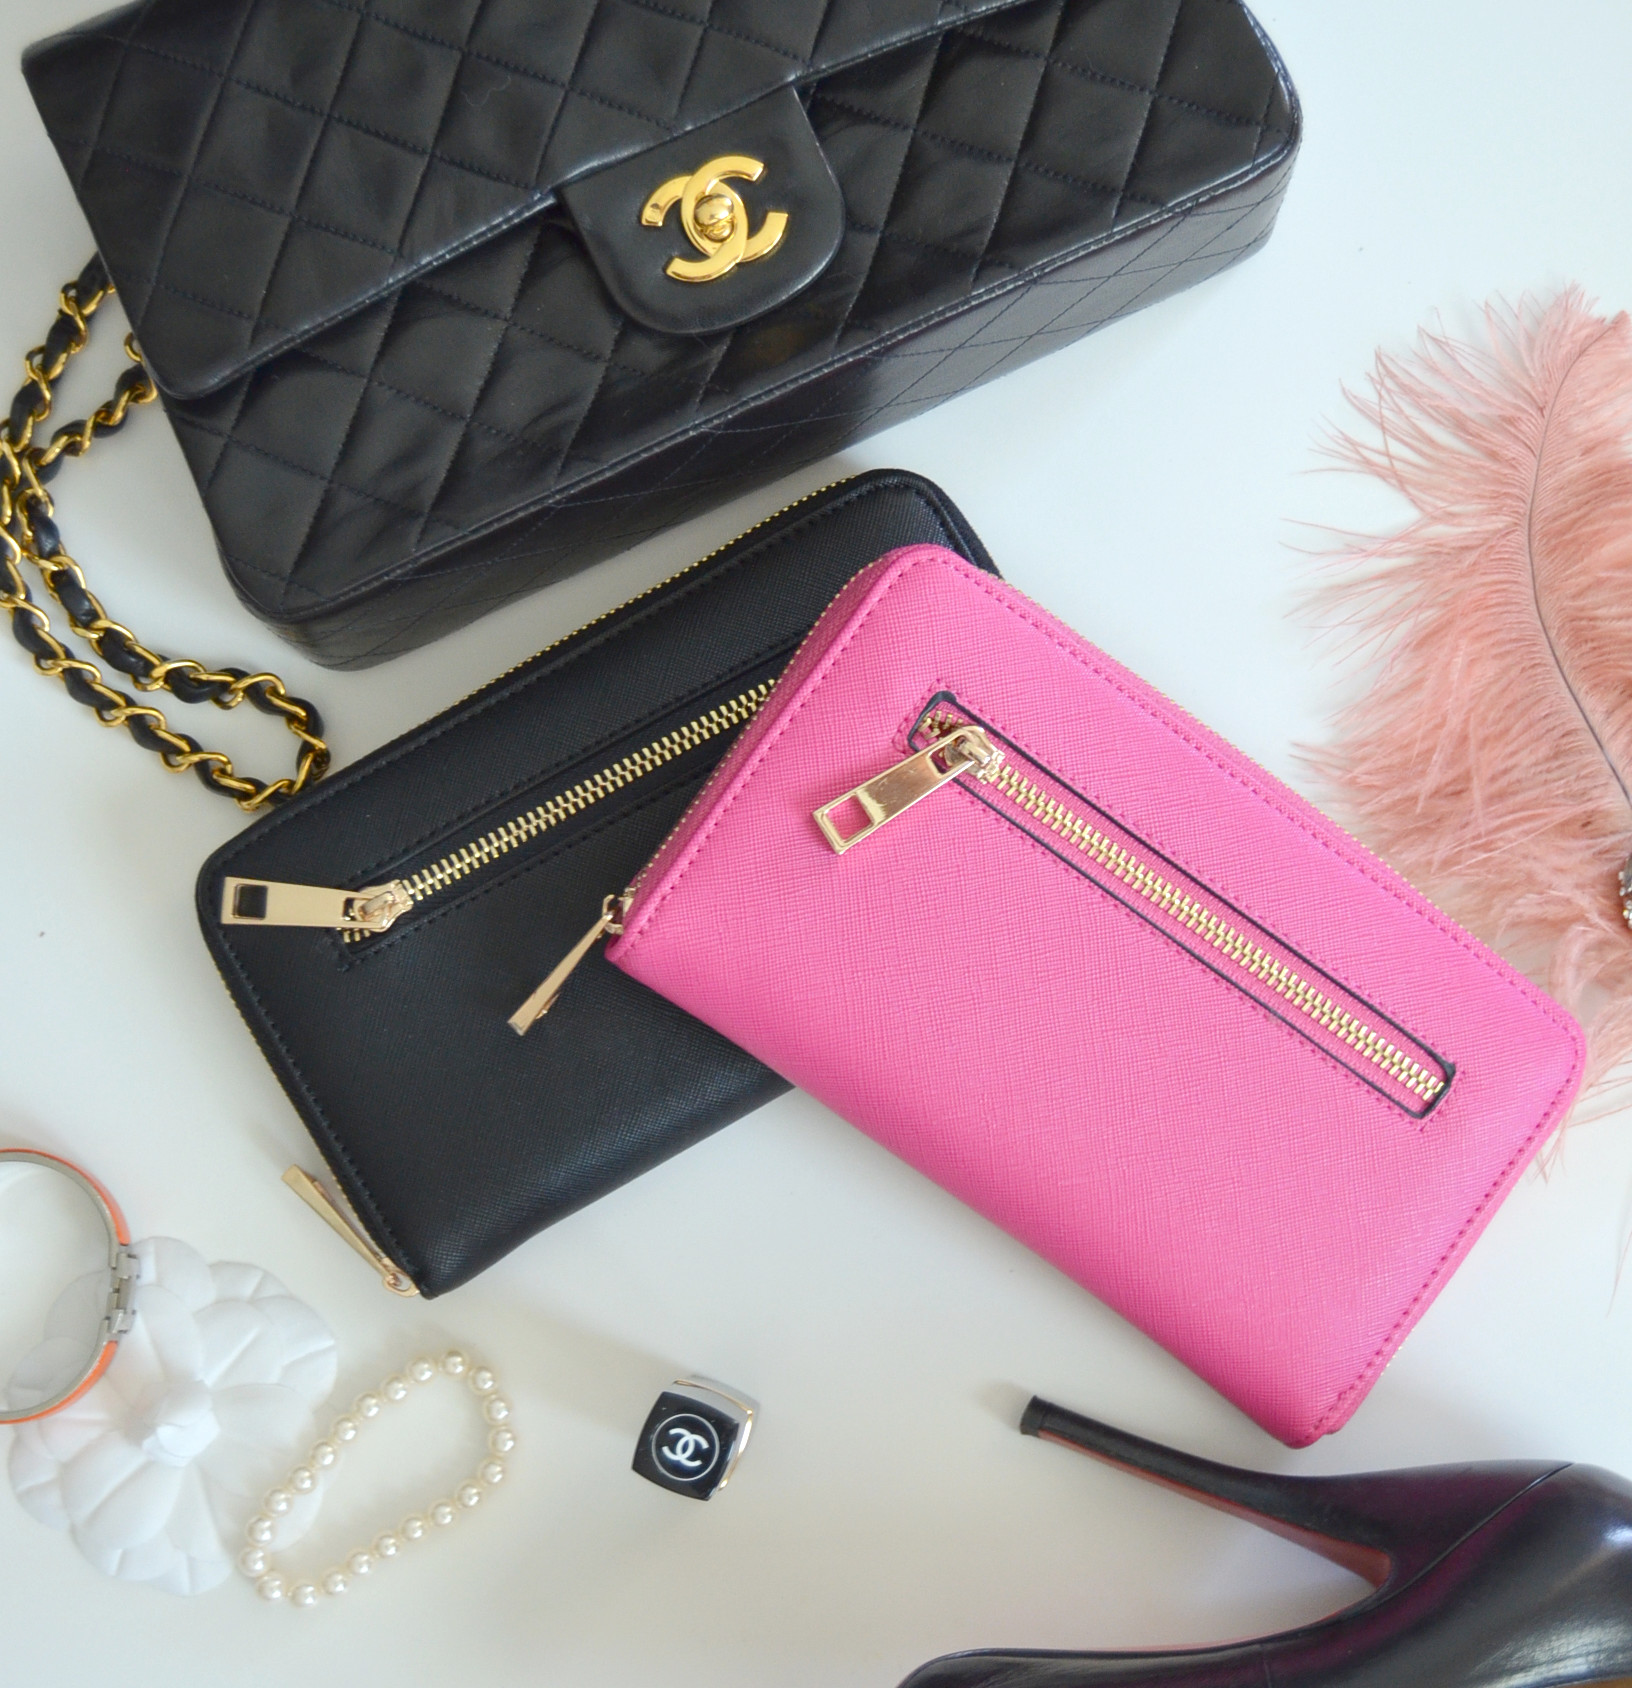 full size wallet in chanel flap bag